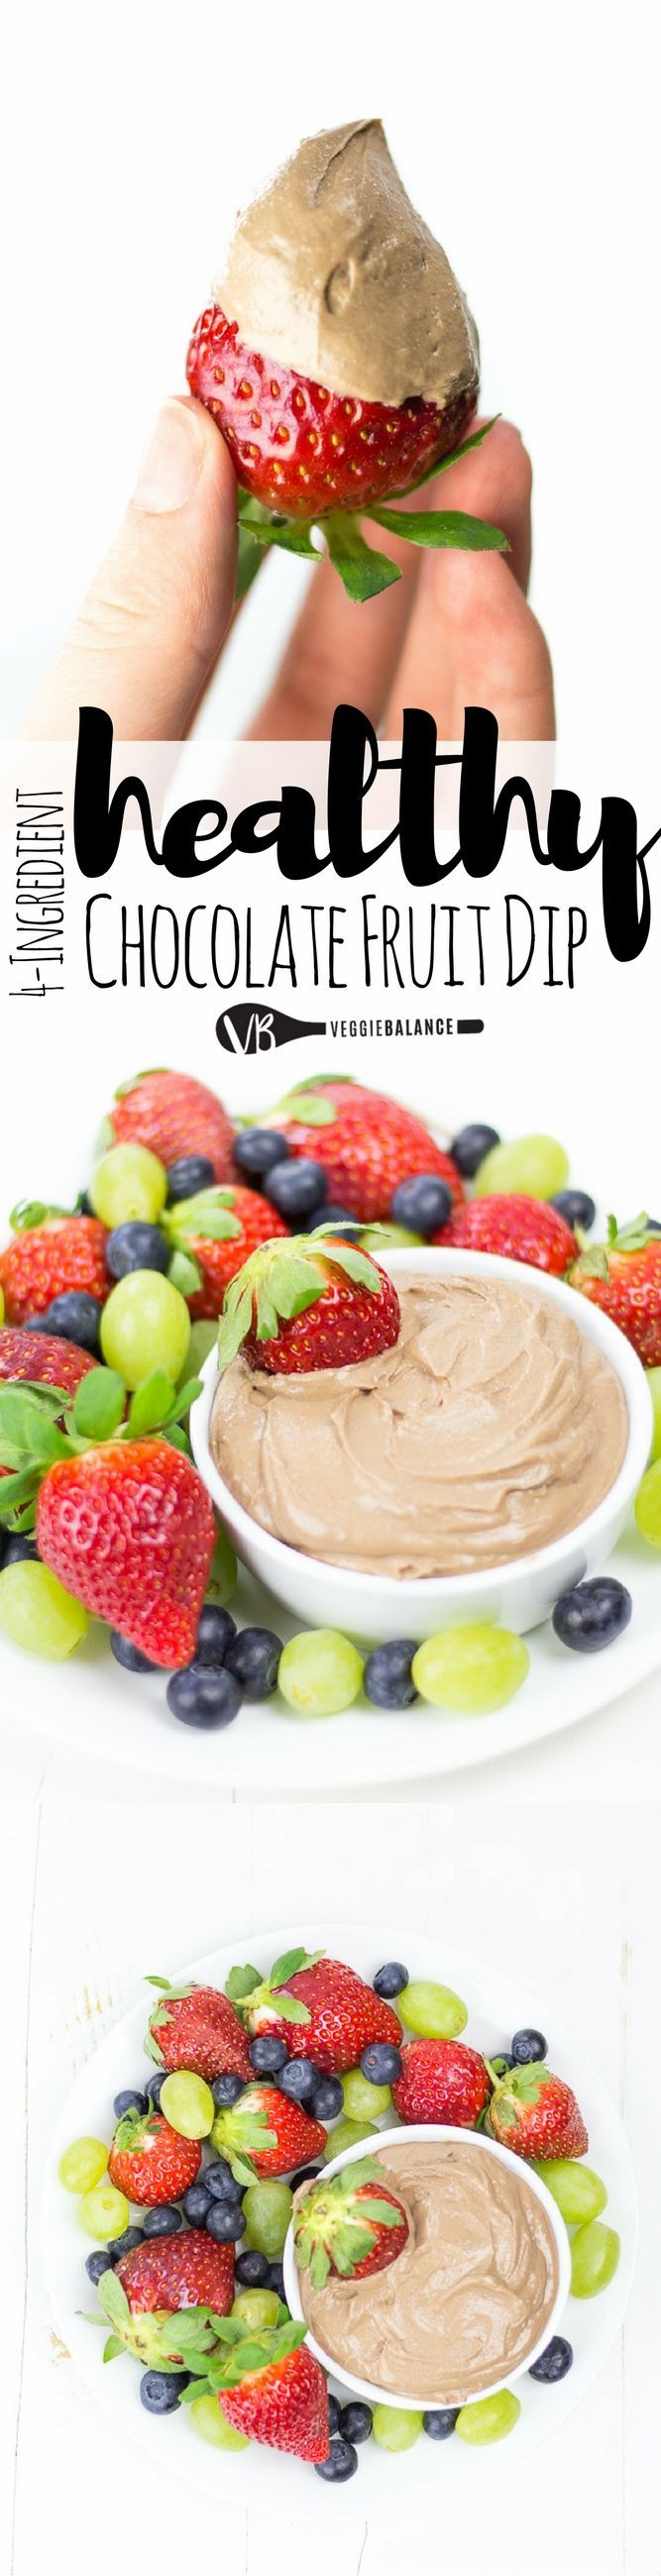 Fruit Dip will take you and your guests on a tasty trip. Only 4 ingredients to make this chocolatey, healthy and allergy sufferer friendly fruit dip. (Gluten Free, Dairy Free, Vegan, Peanut Free) Sponsored by @sunbutter